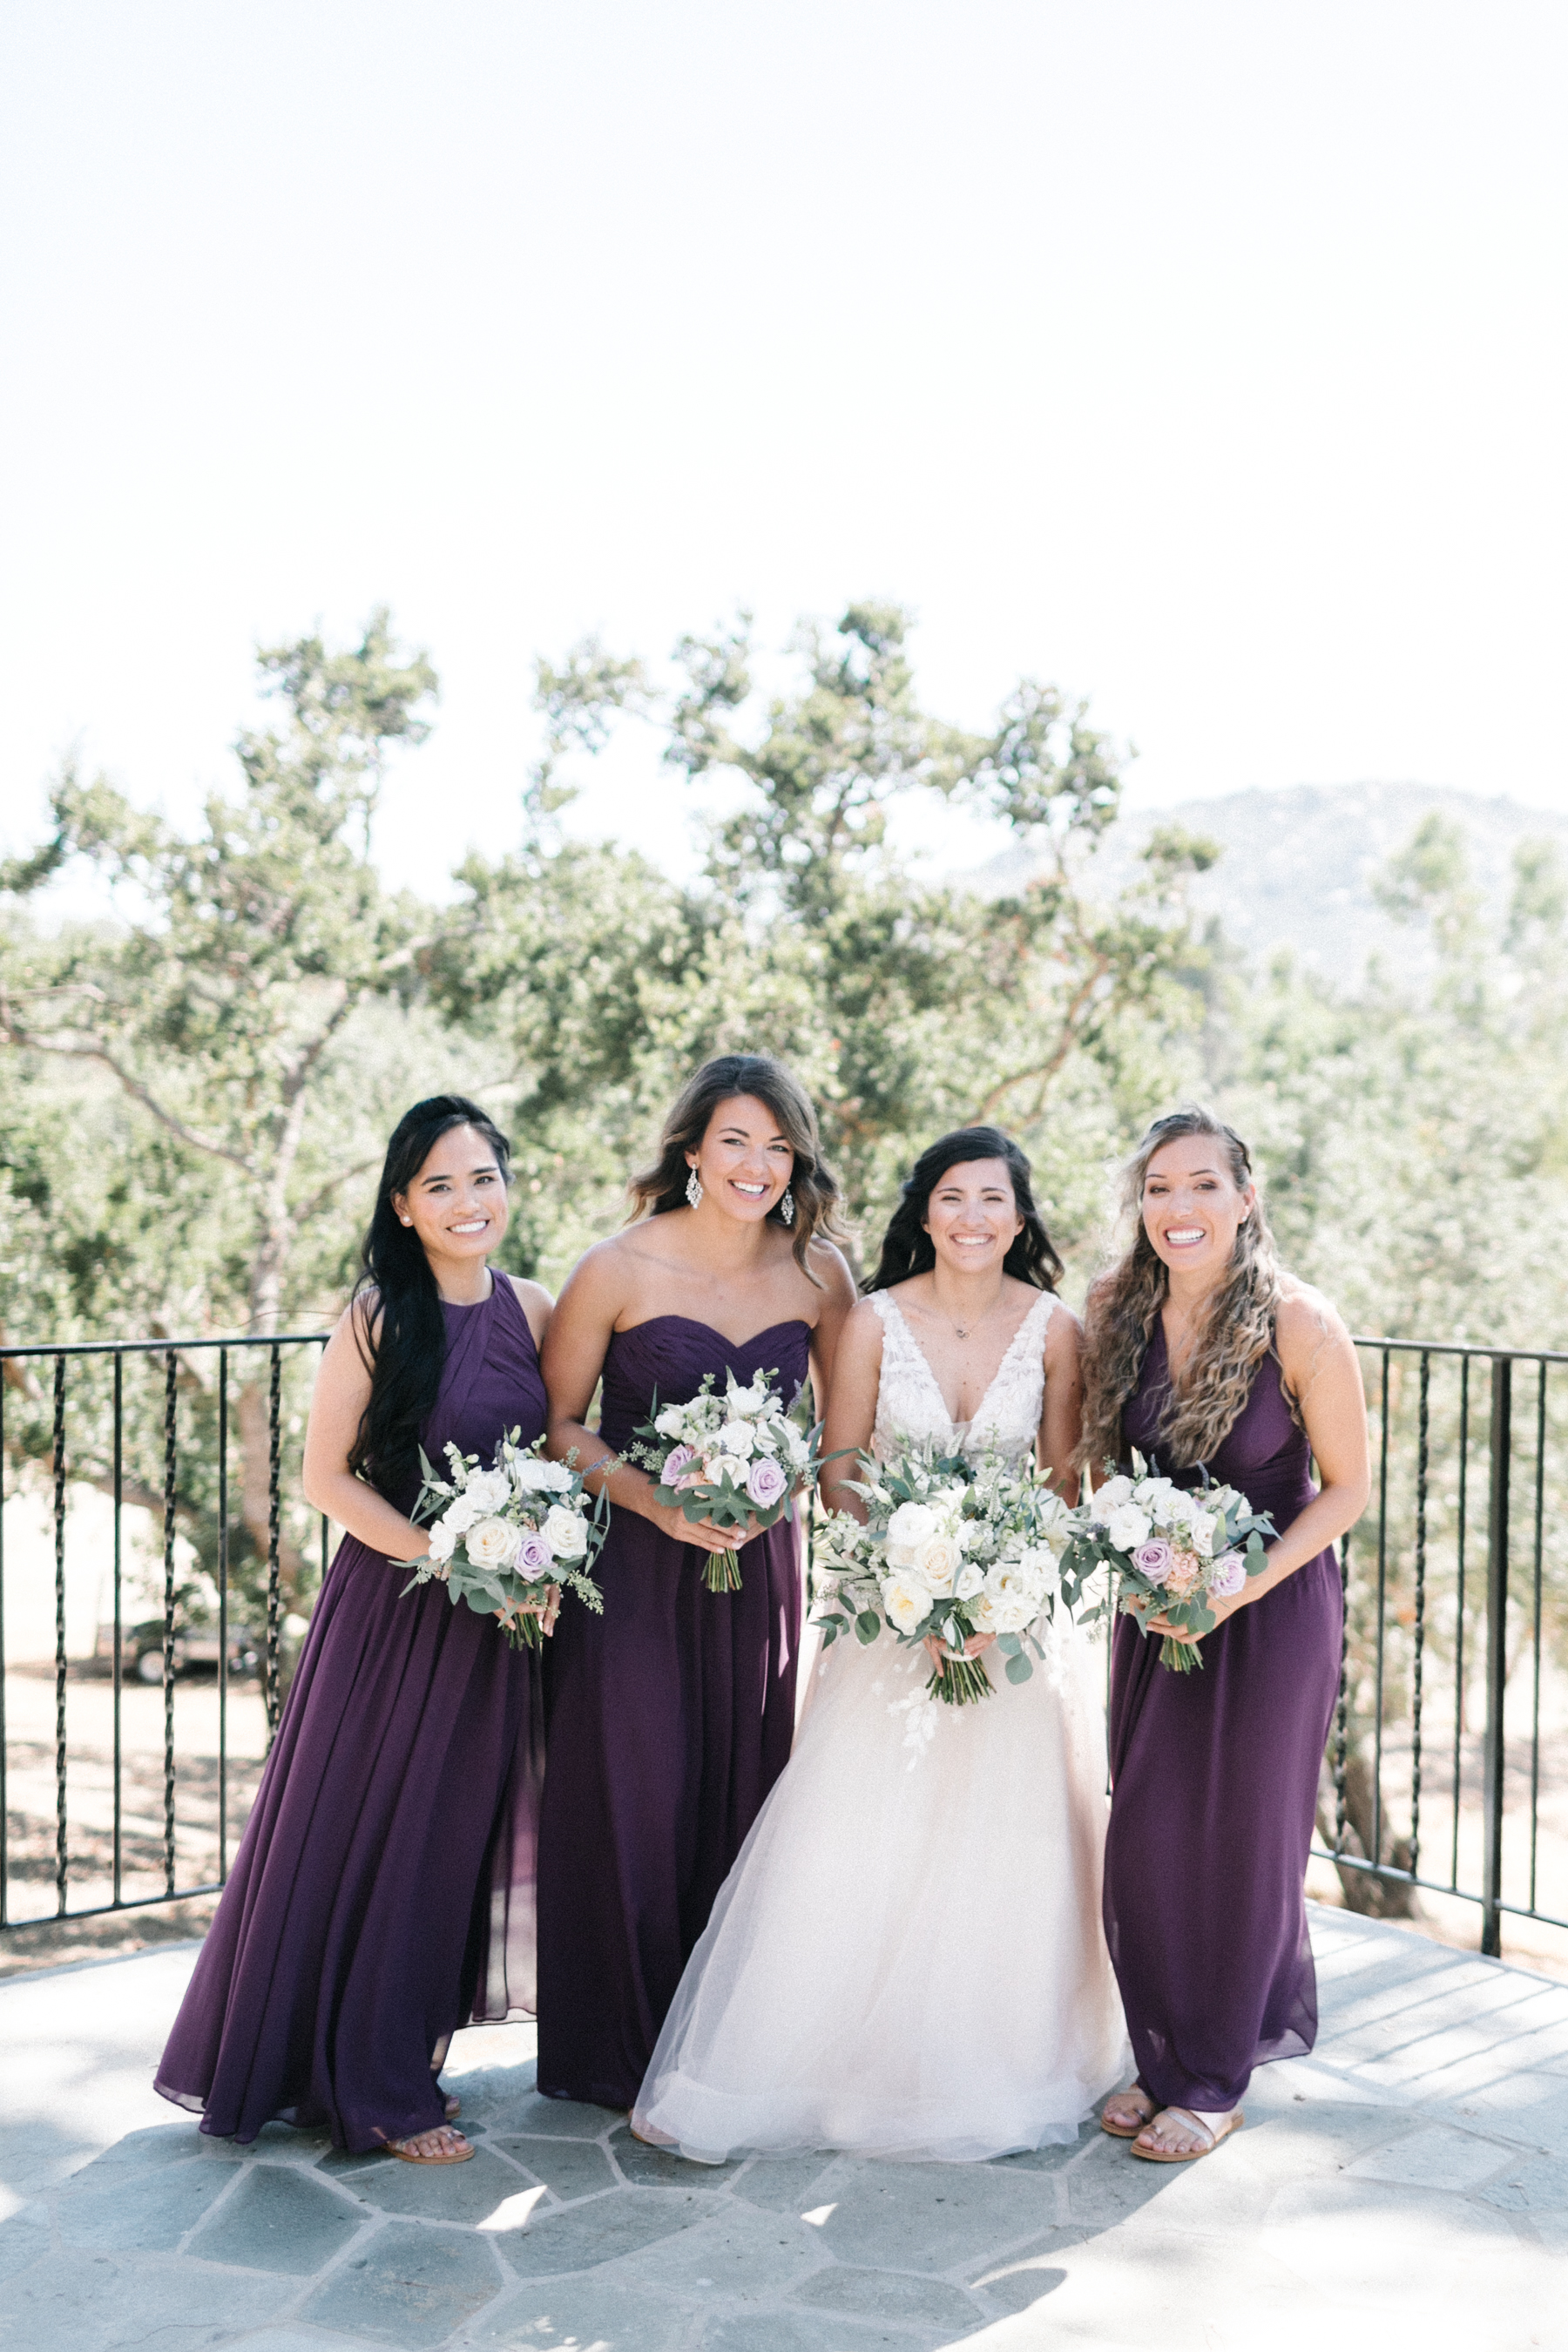 Jordan and Alex's Mt. Woodson Ramona Wedding Great Woodland Photography 8-31-19-4.jpg